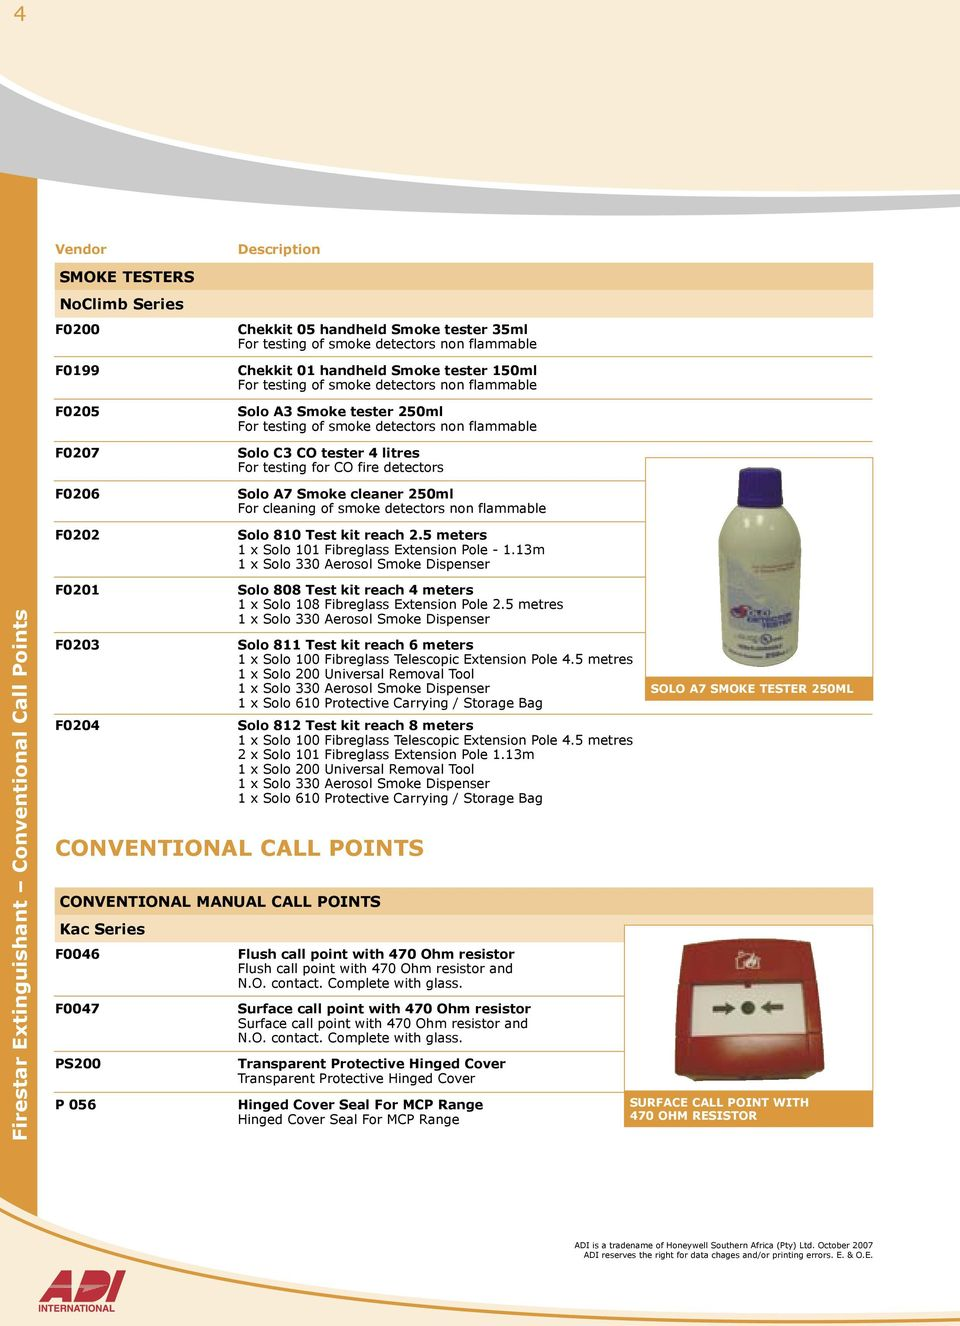 250ml For cleaning of smoke detectors non flammable Solo 810 Test kit reach  2.5 meters 1